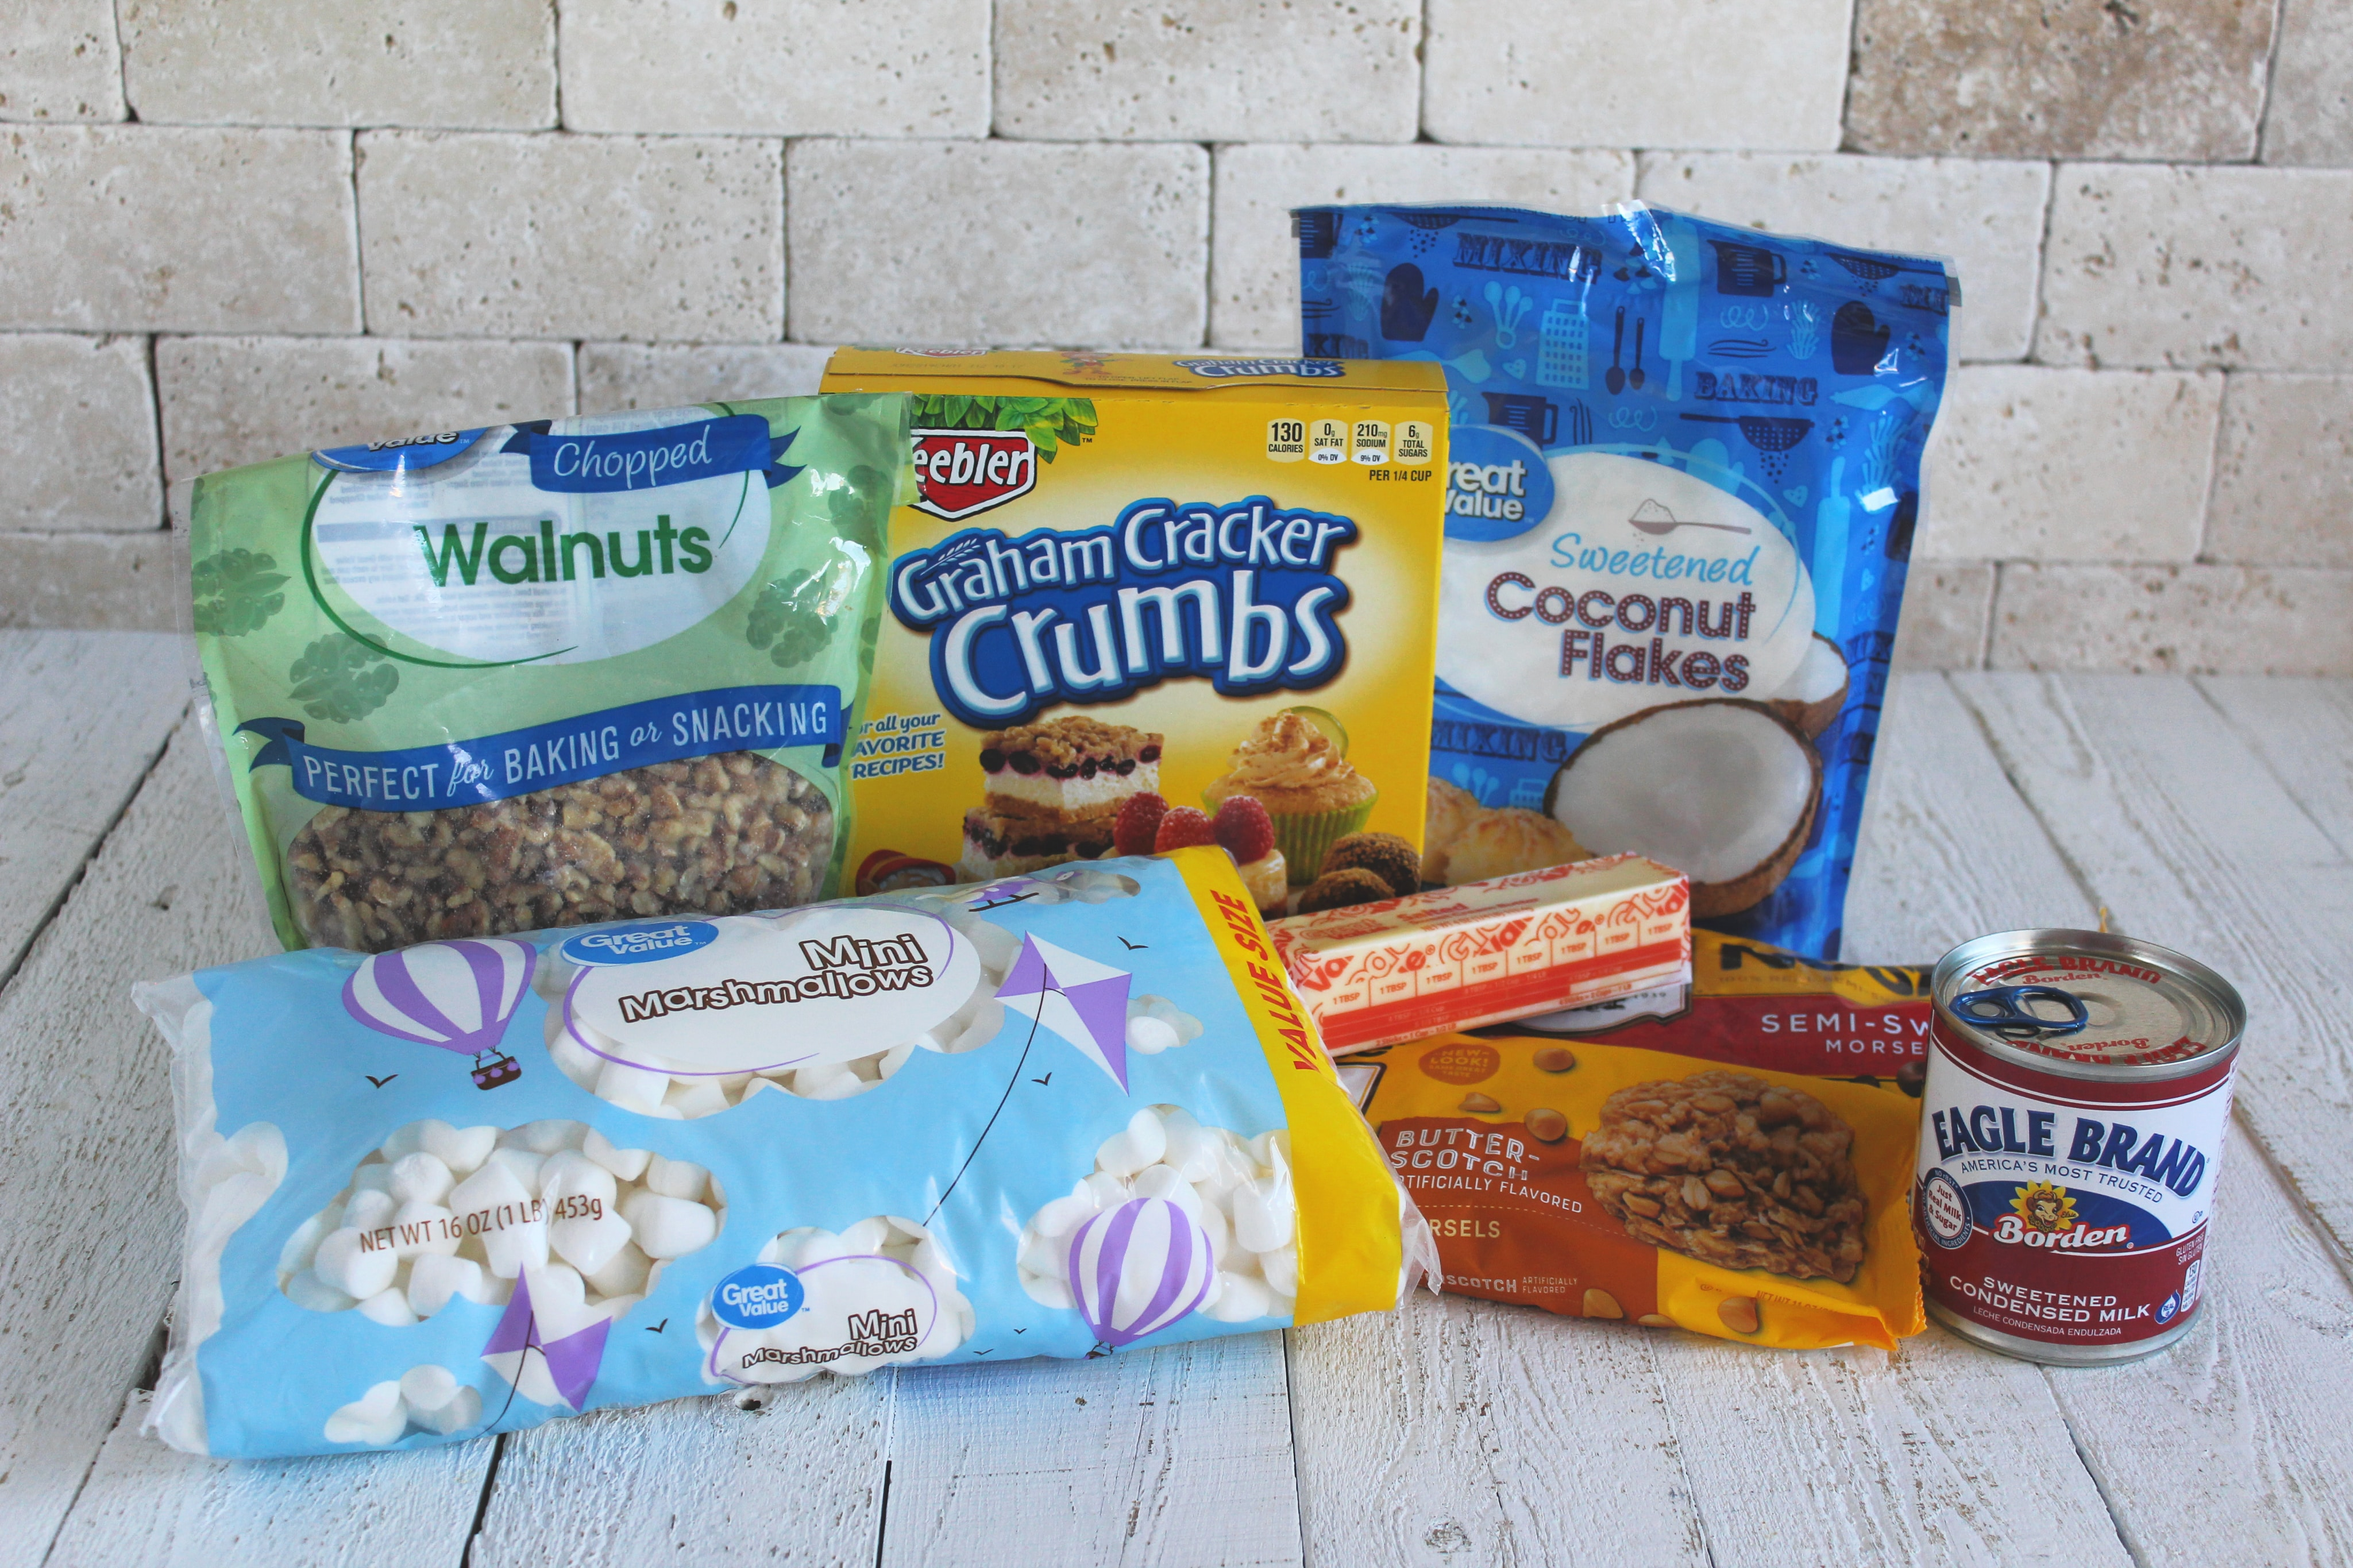 Assemble your ingredients for the 7-layer dream bars: graham cracker crumbs, butter, condensed milk, coconut, chocolate chips, butterscotch chips, mini marshmallows, and chopped pecans.